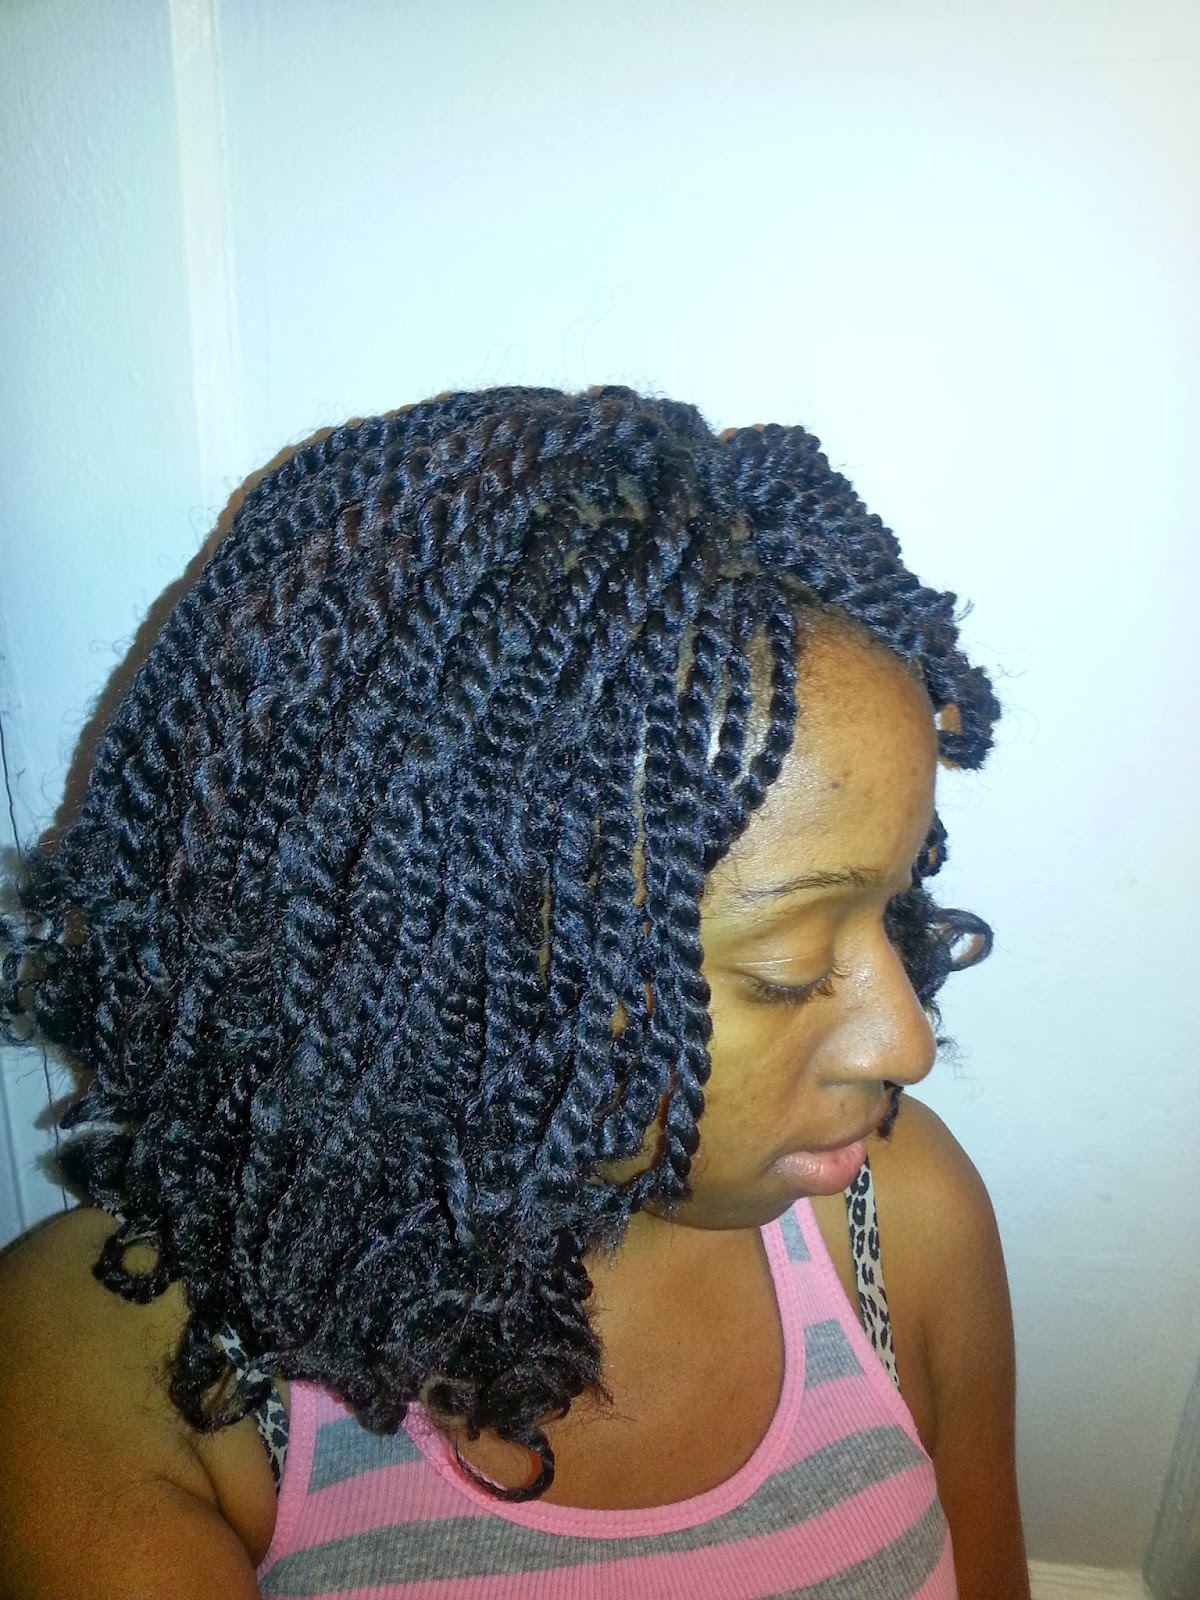 ... is the Crochet Twists and how it looked when I untwisted the hair